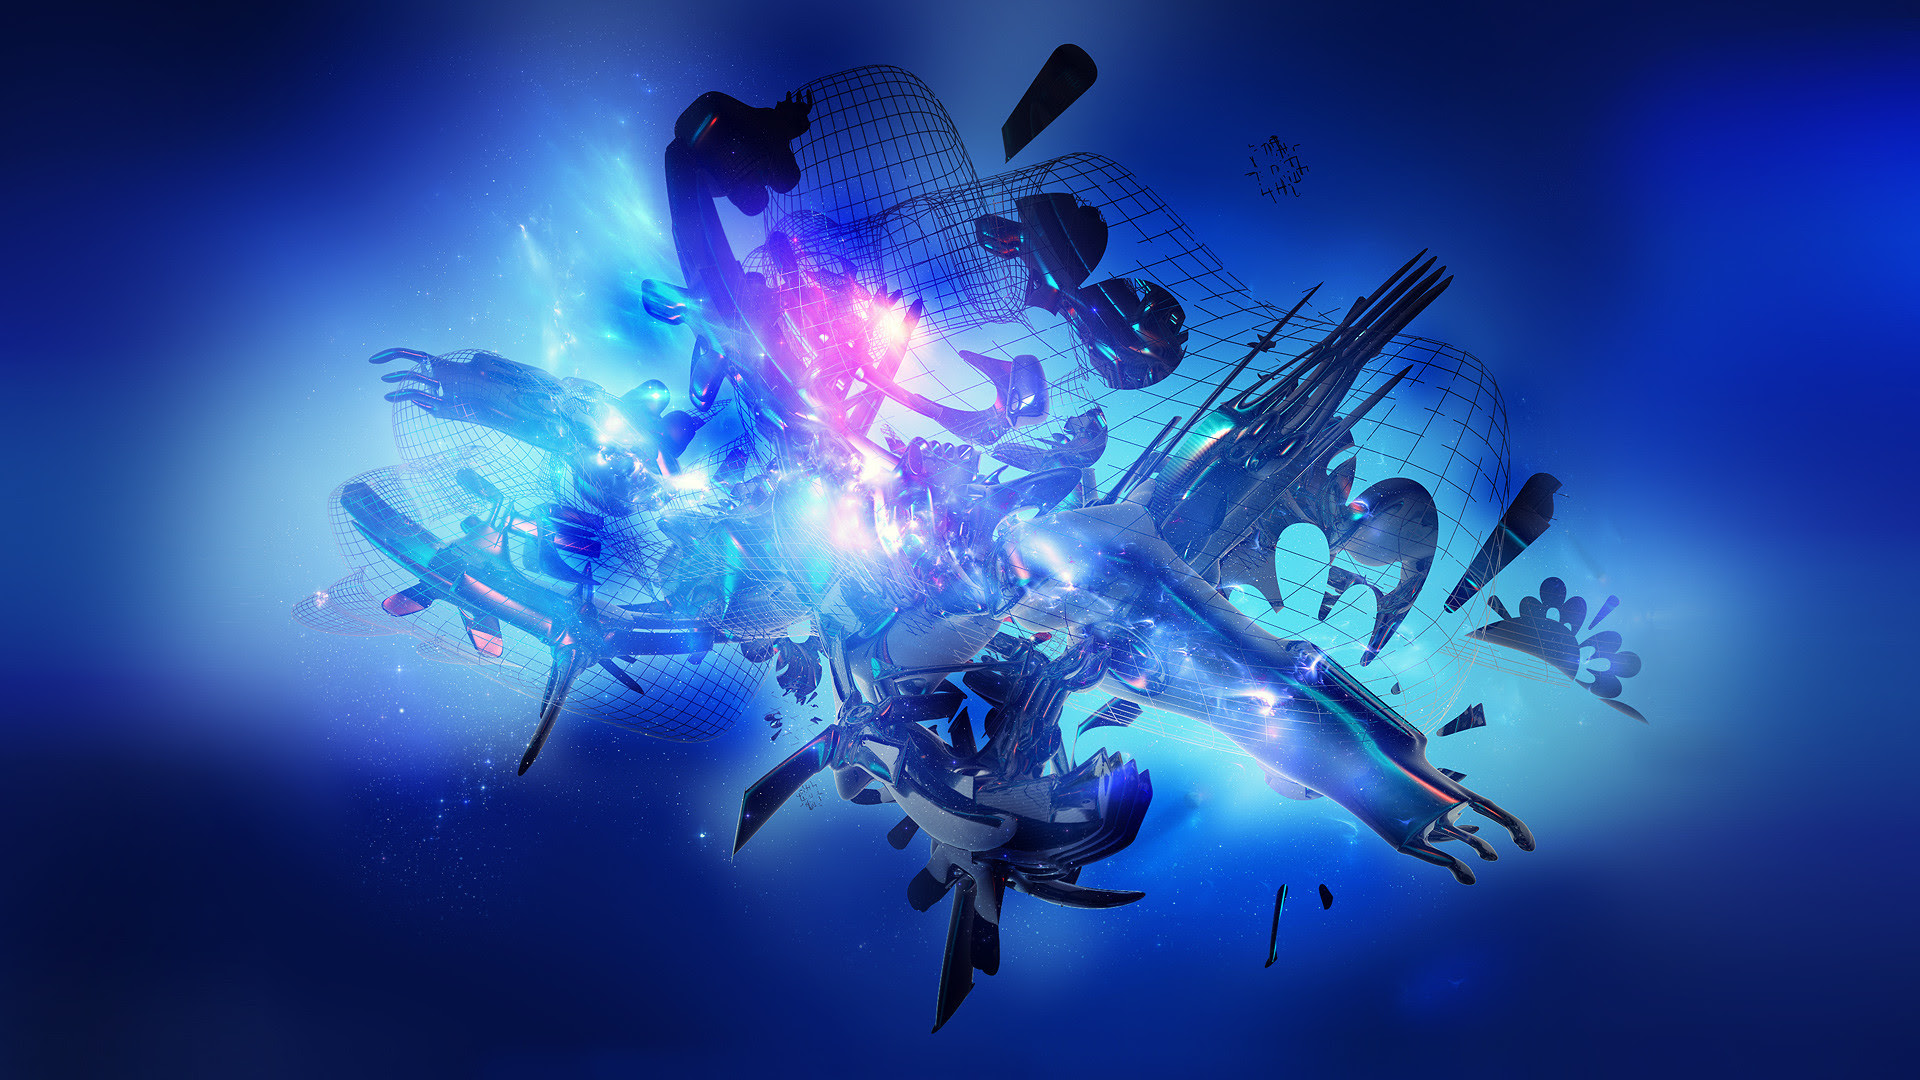 Abstract Gaming Wallpapers 1080p (69+ images)